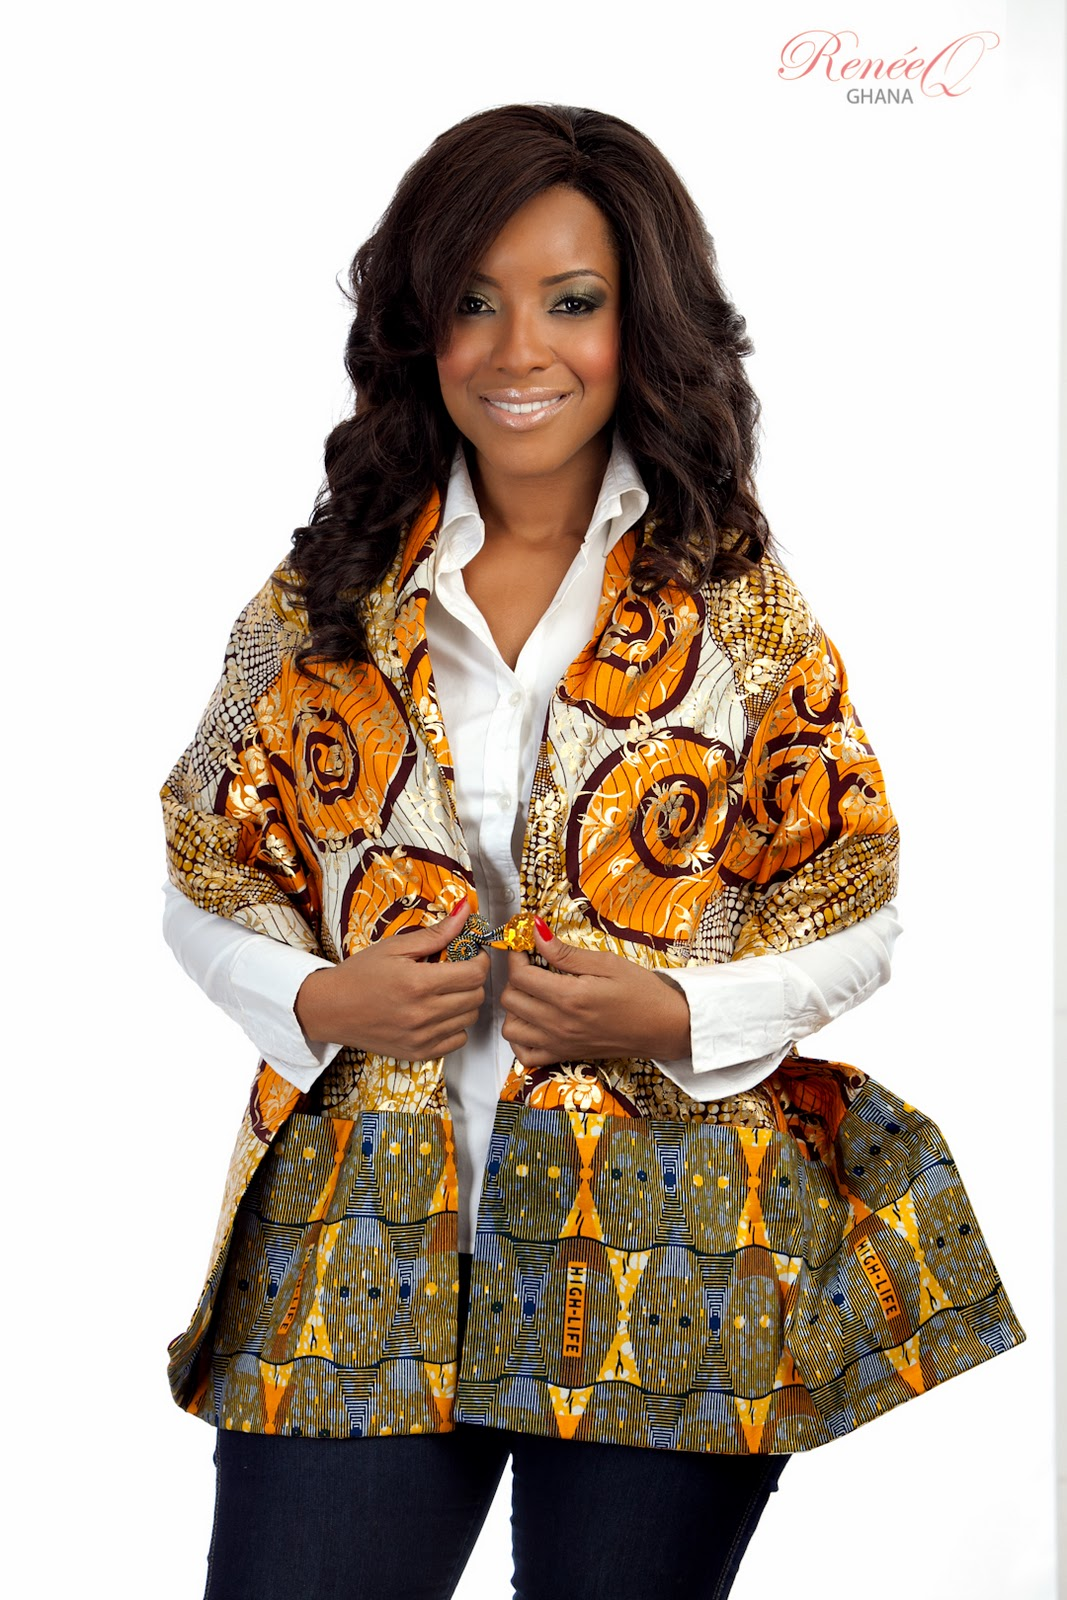 LOOK FLY IN A RENEE Q AFRICAN PRINT BP SHAWL | CIAAFRIQUE ...